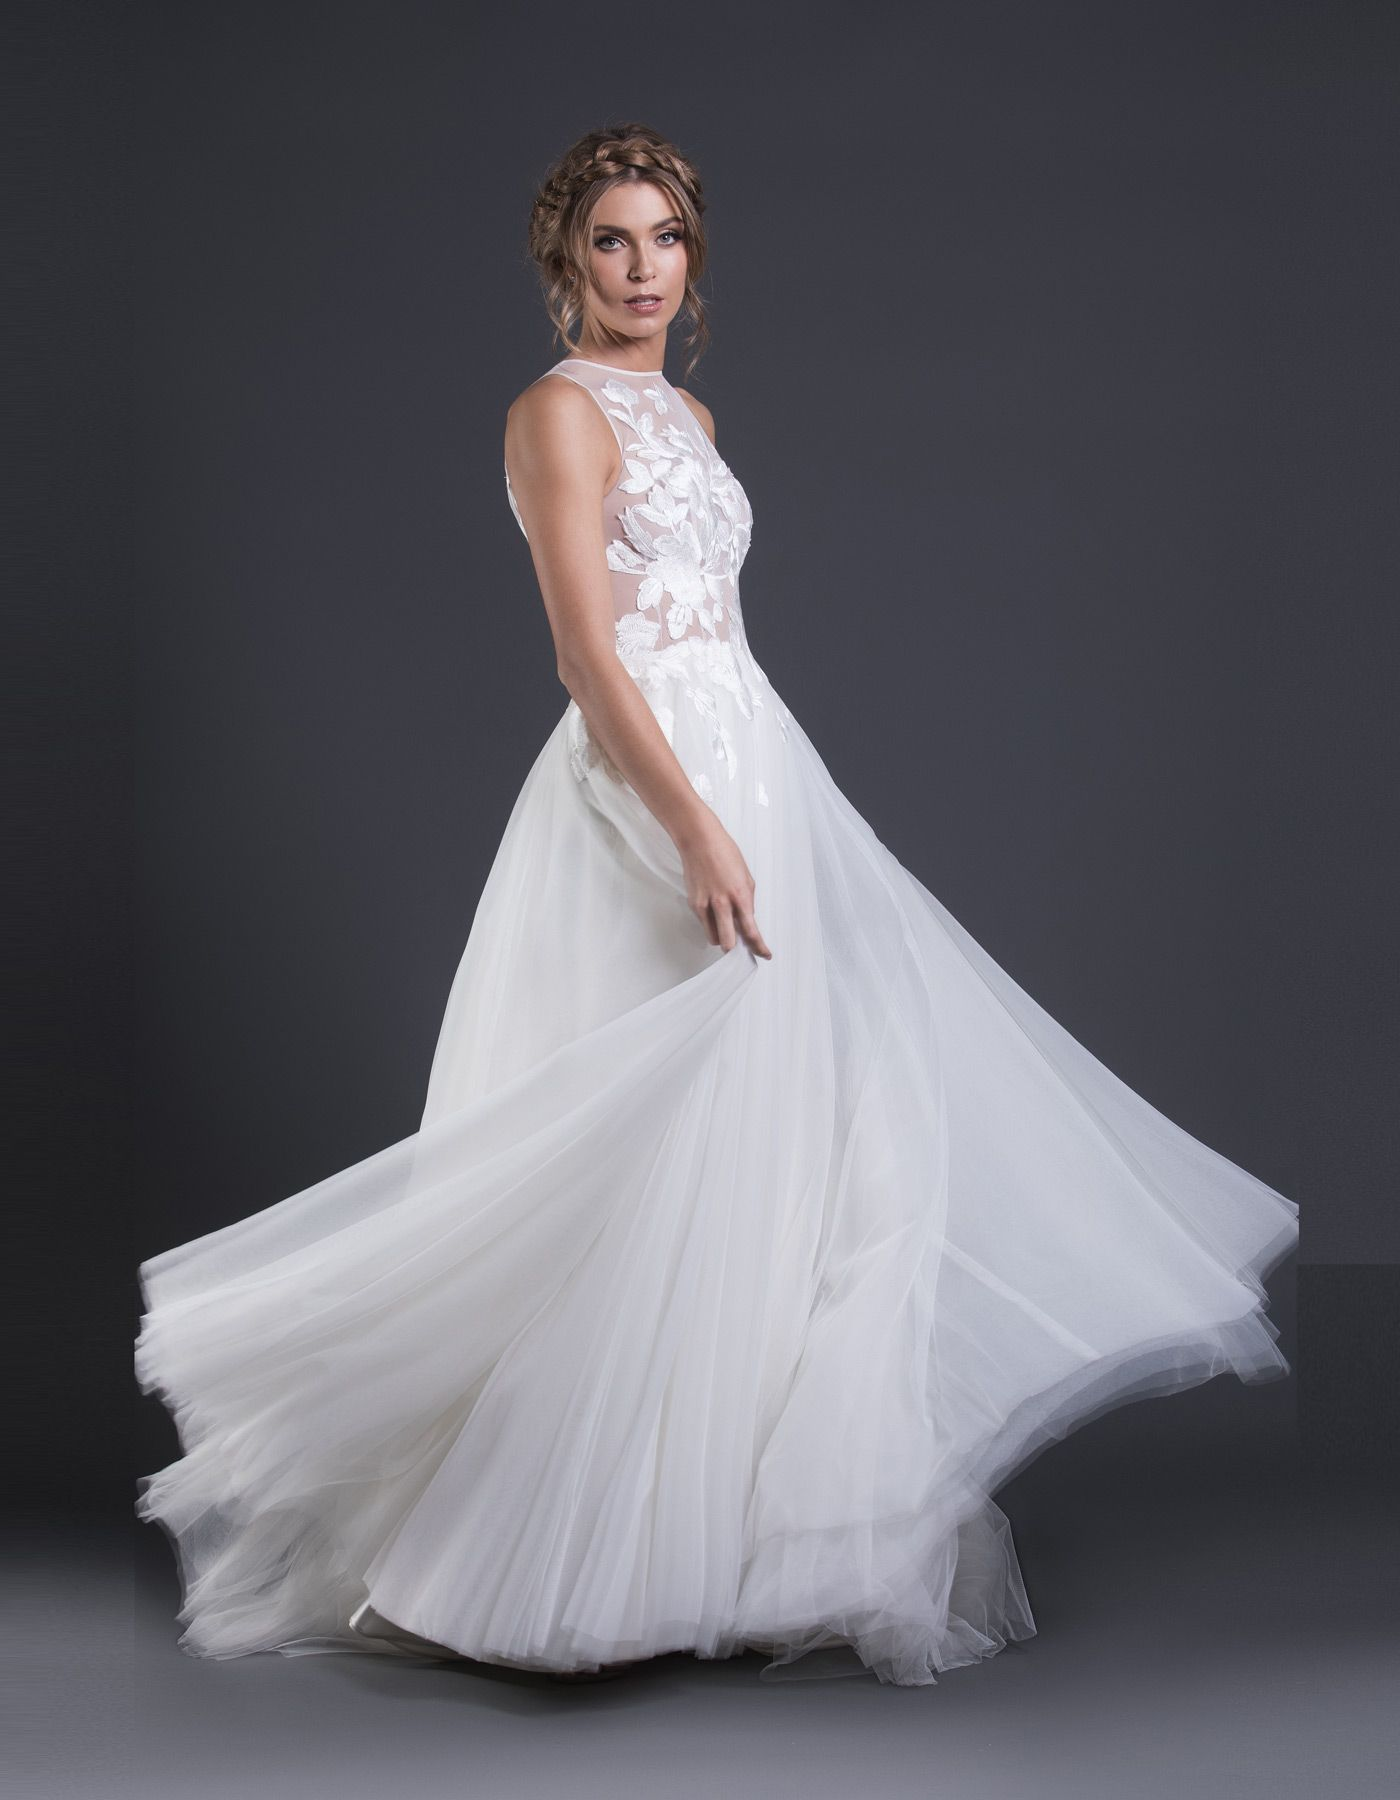 Estee by caleche an ethereal princess style gown with a